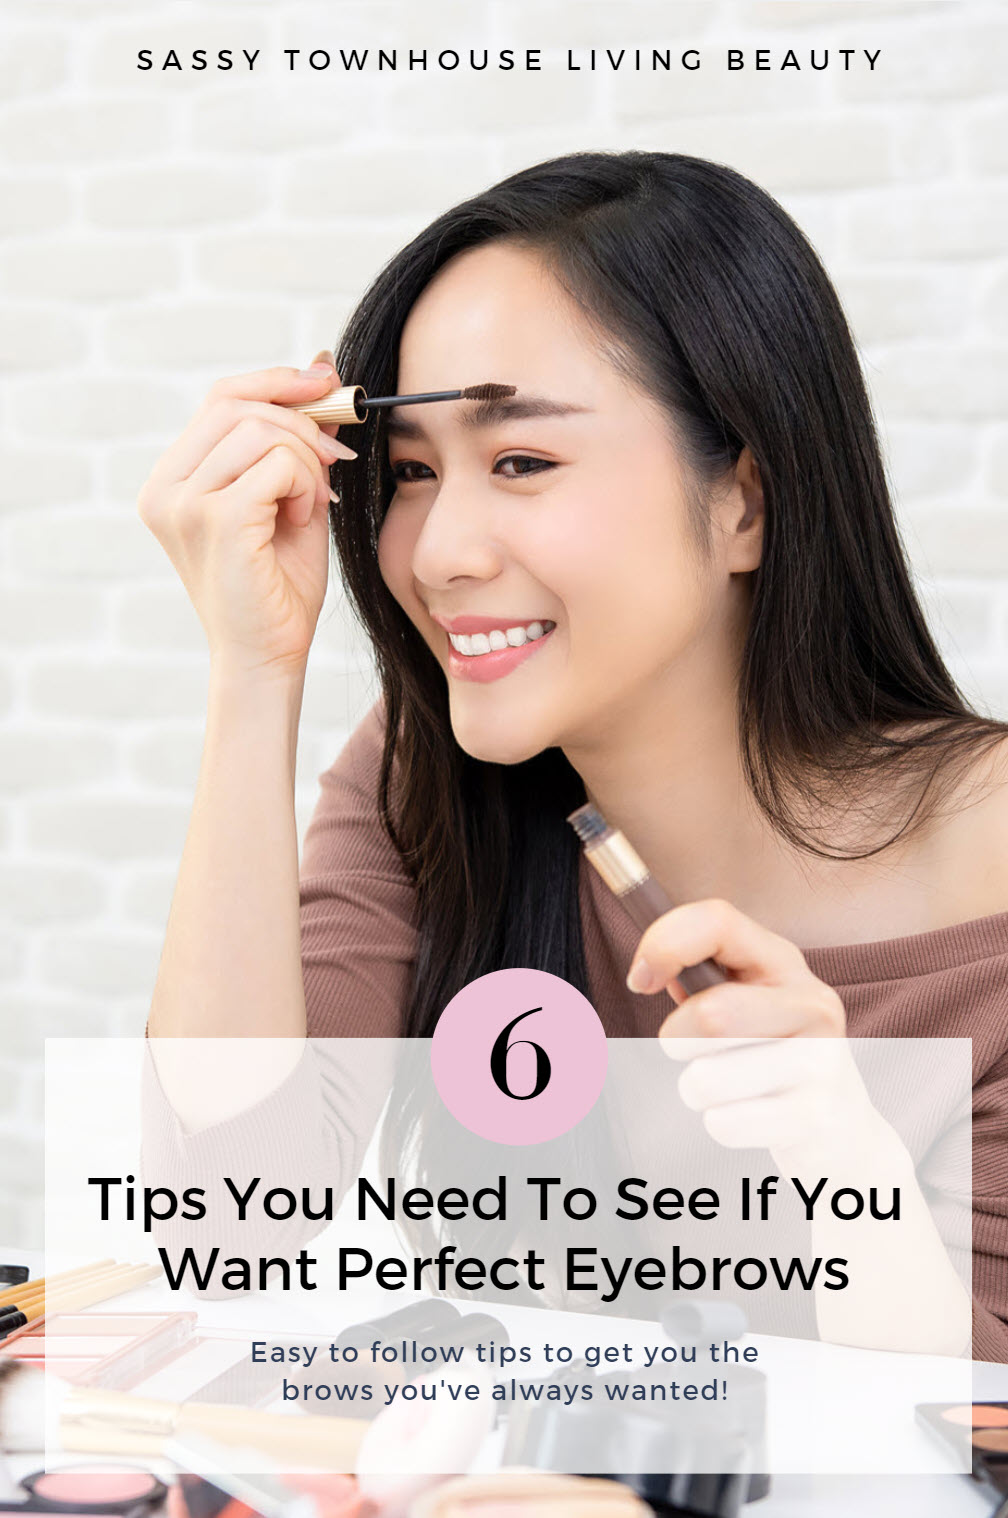 6 Tips You Need To See If You Want Perfect Eyebrows - Sassy Townhouse Living